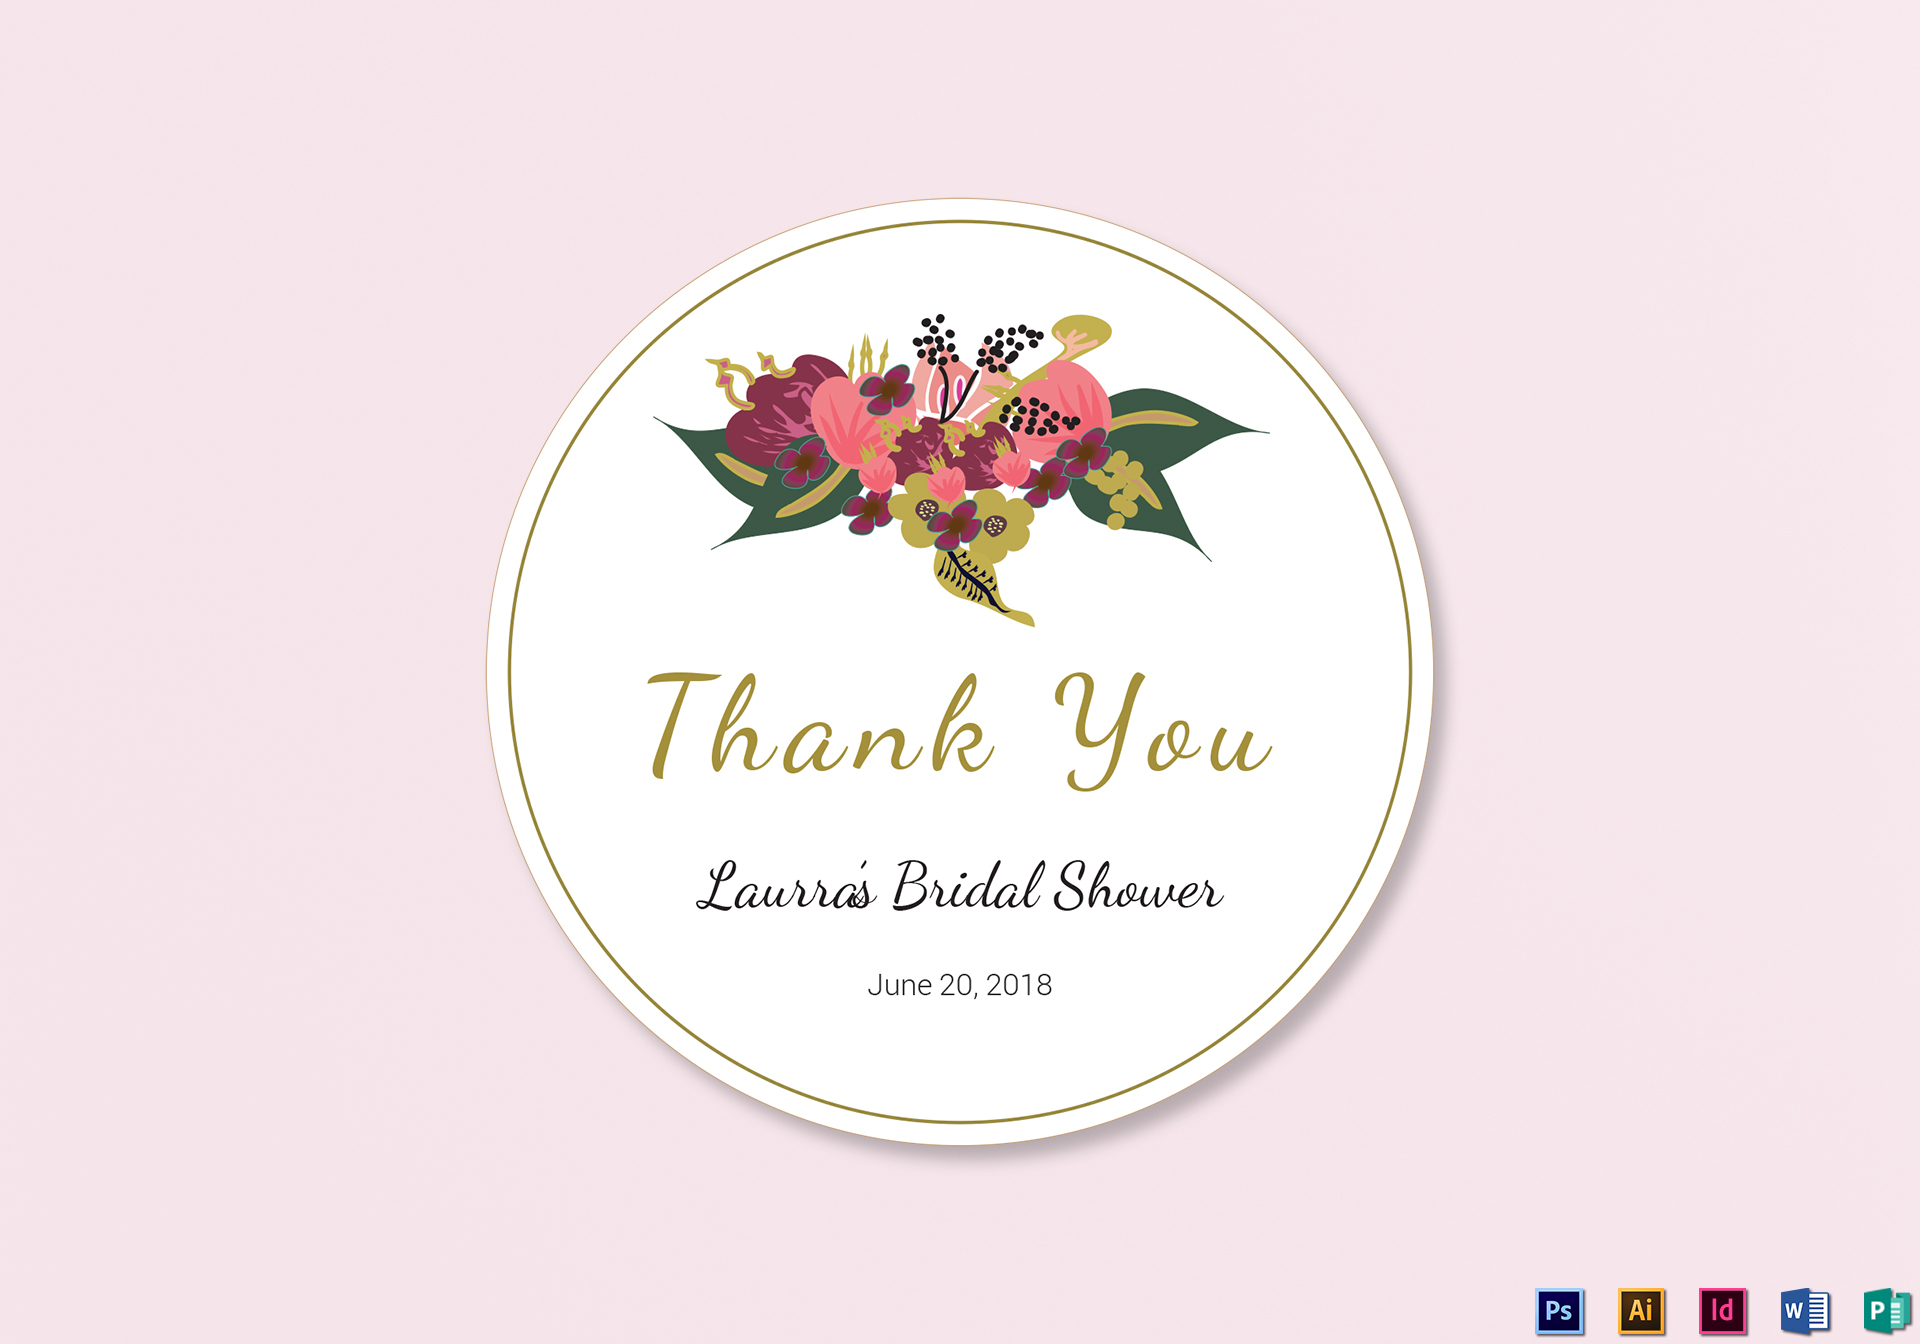 Burgundy Floral Wedding Label Design Templates In Word PSD - Wedding label templates